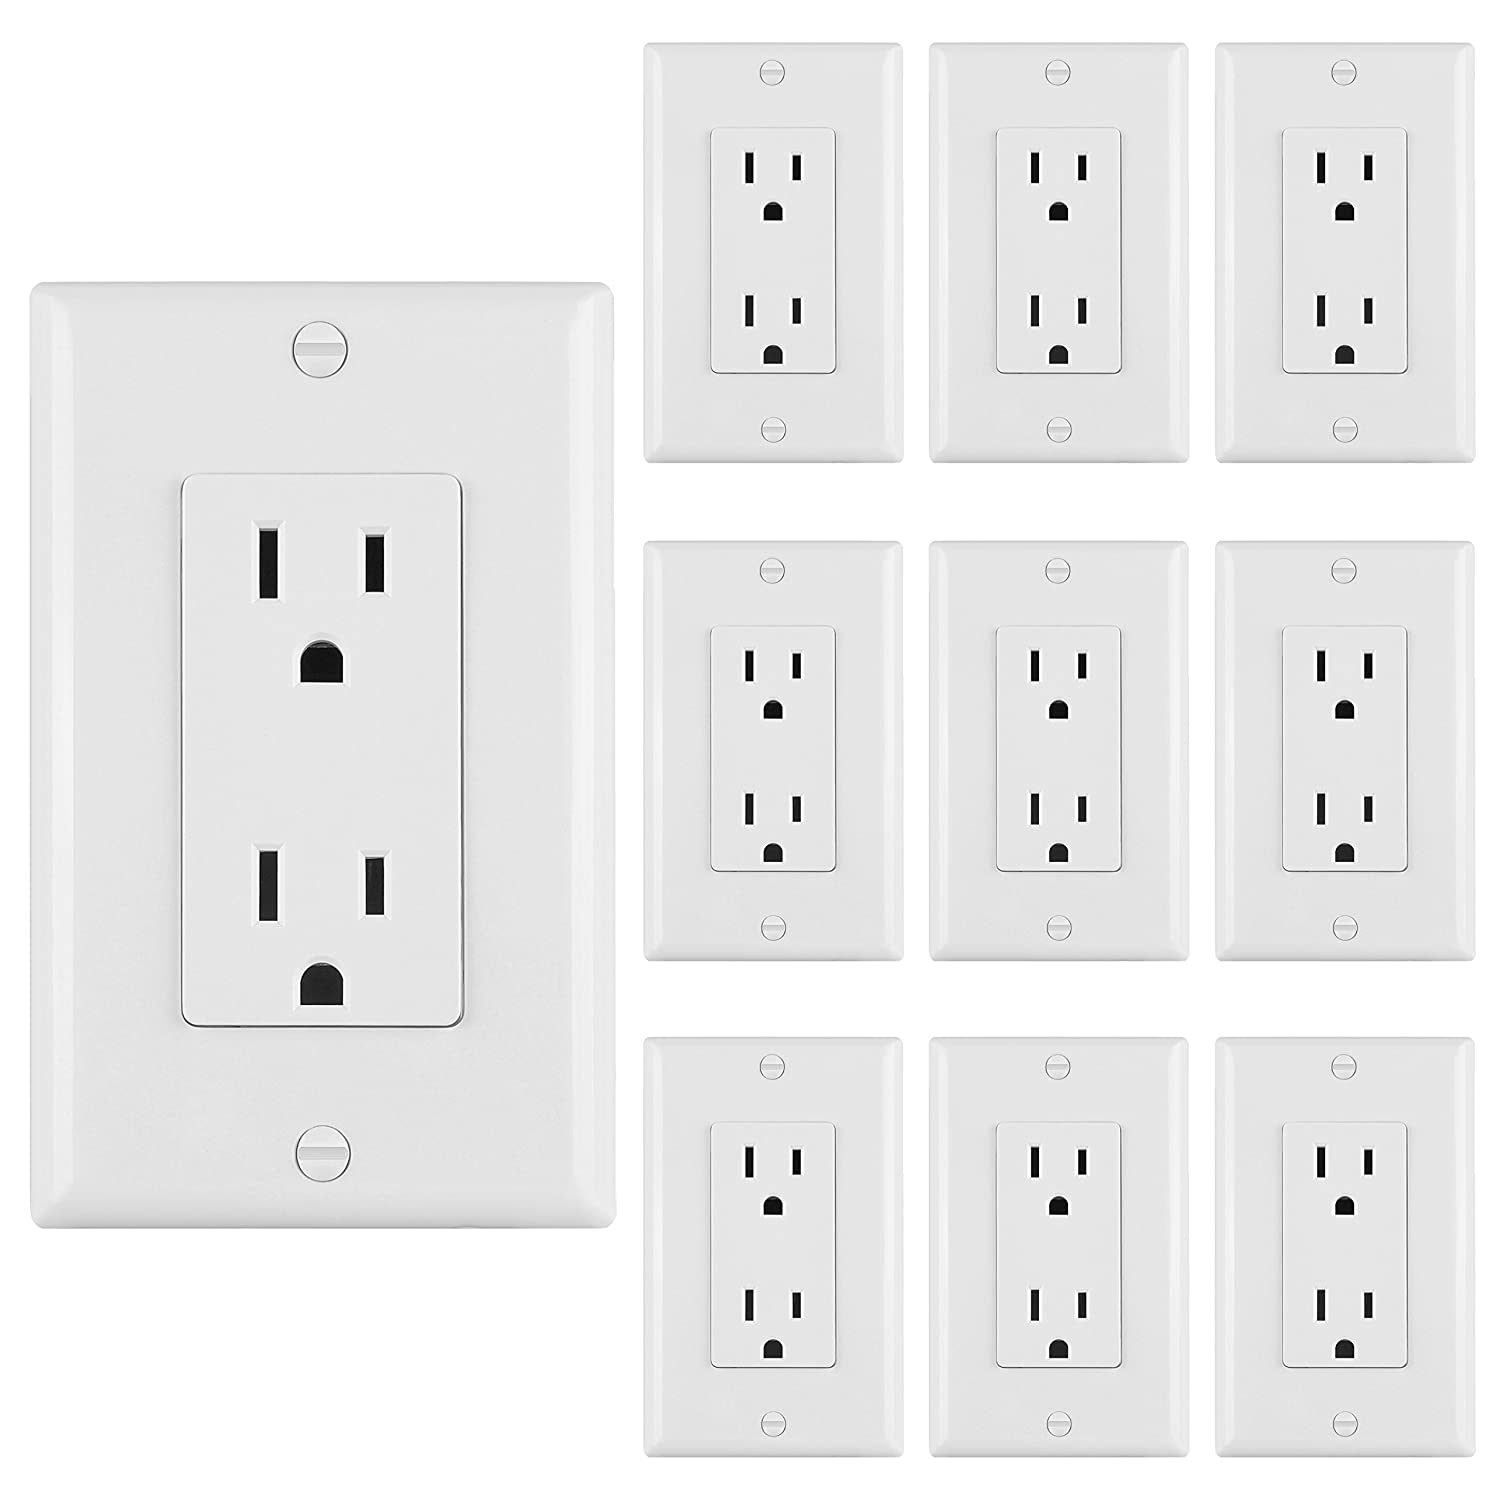 [10 Pack] BESTTEN 15A Standard Decor Outlets with Wall Plates, Decorative Duplex Electrical Receptacle and Covers, Residential and Commerical Grade, Self-Grounding, UL Listed, White